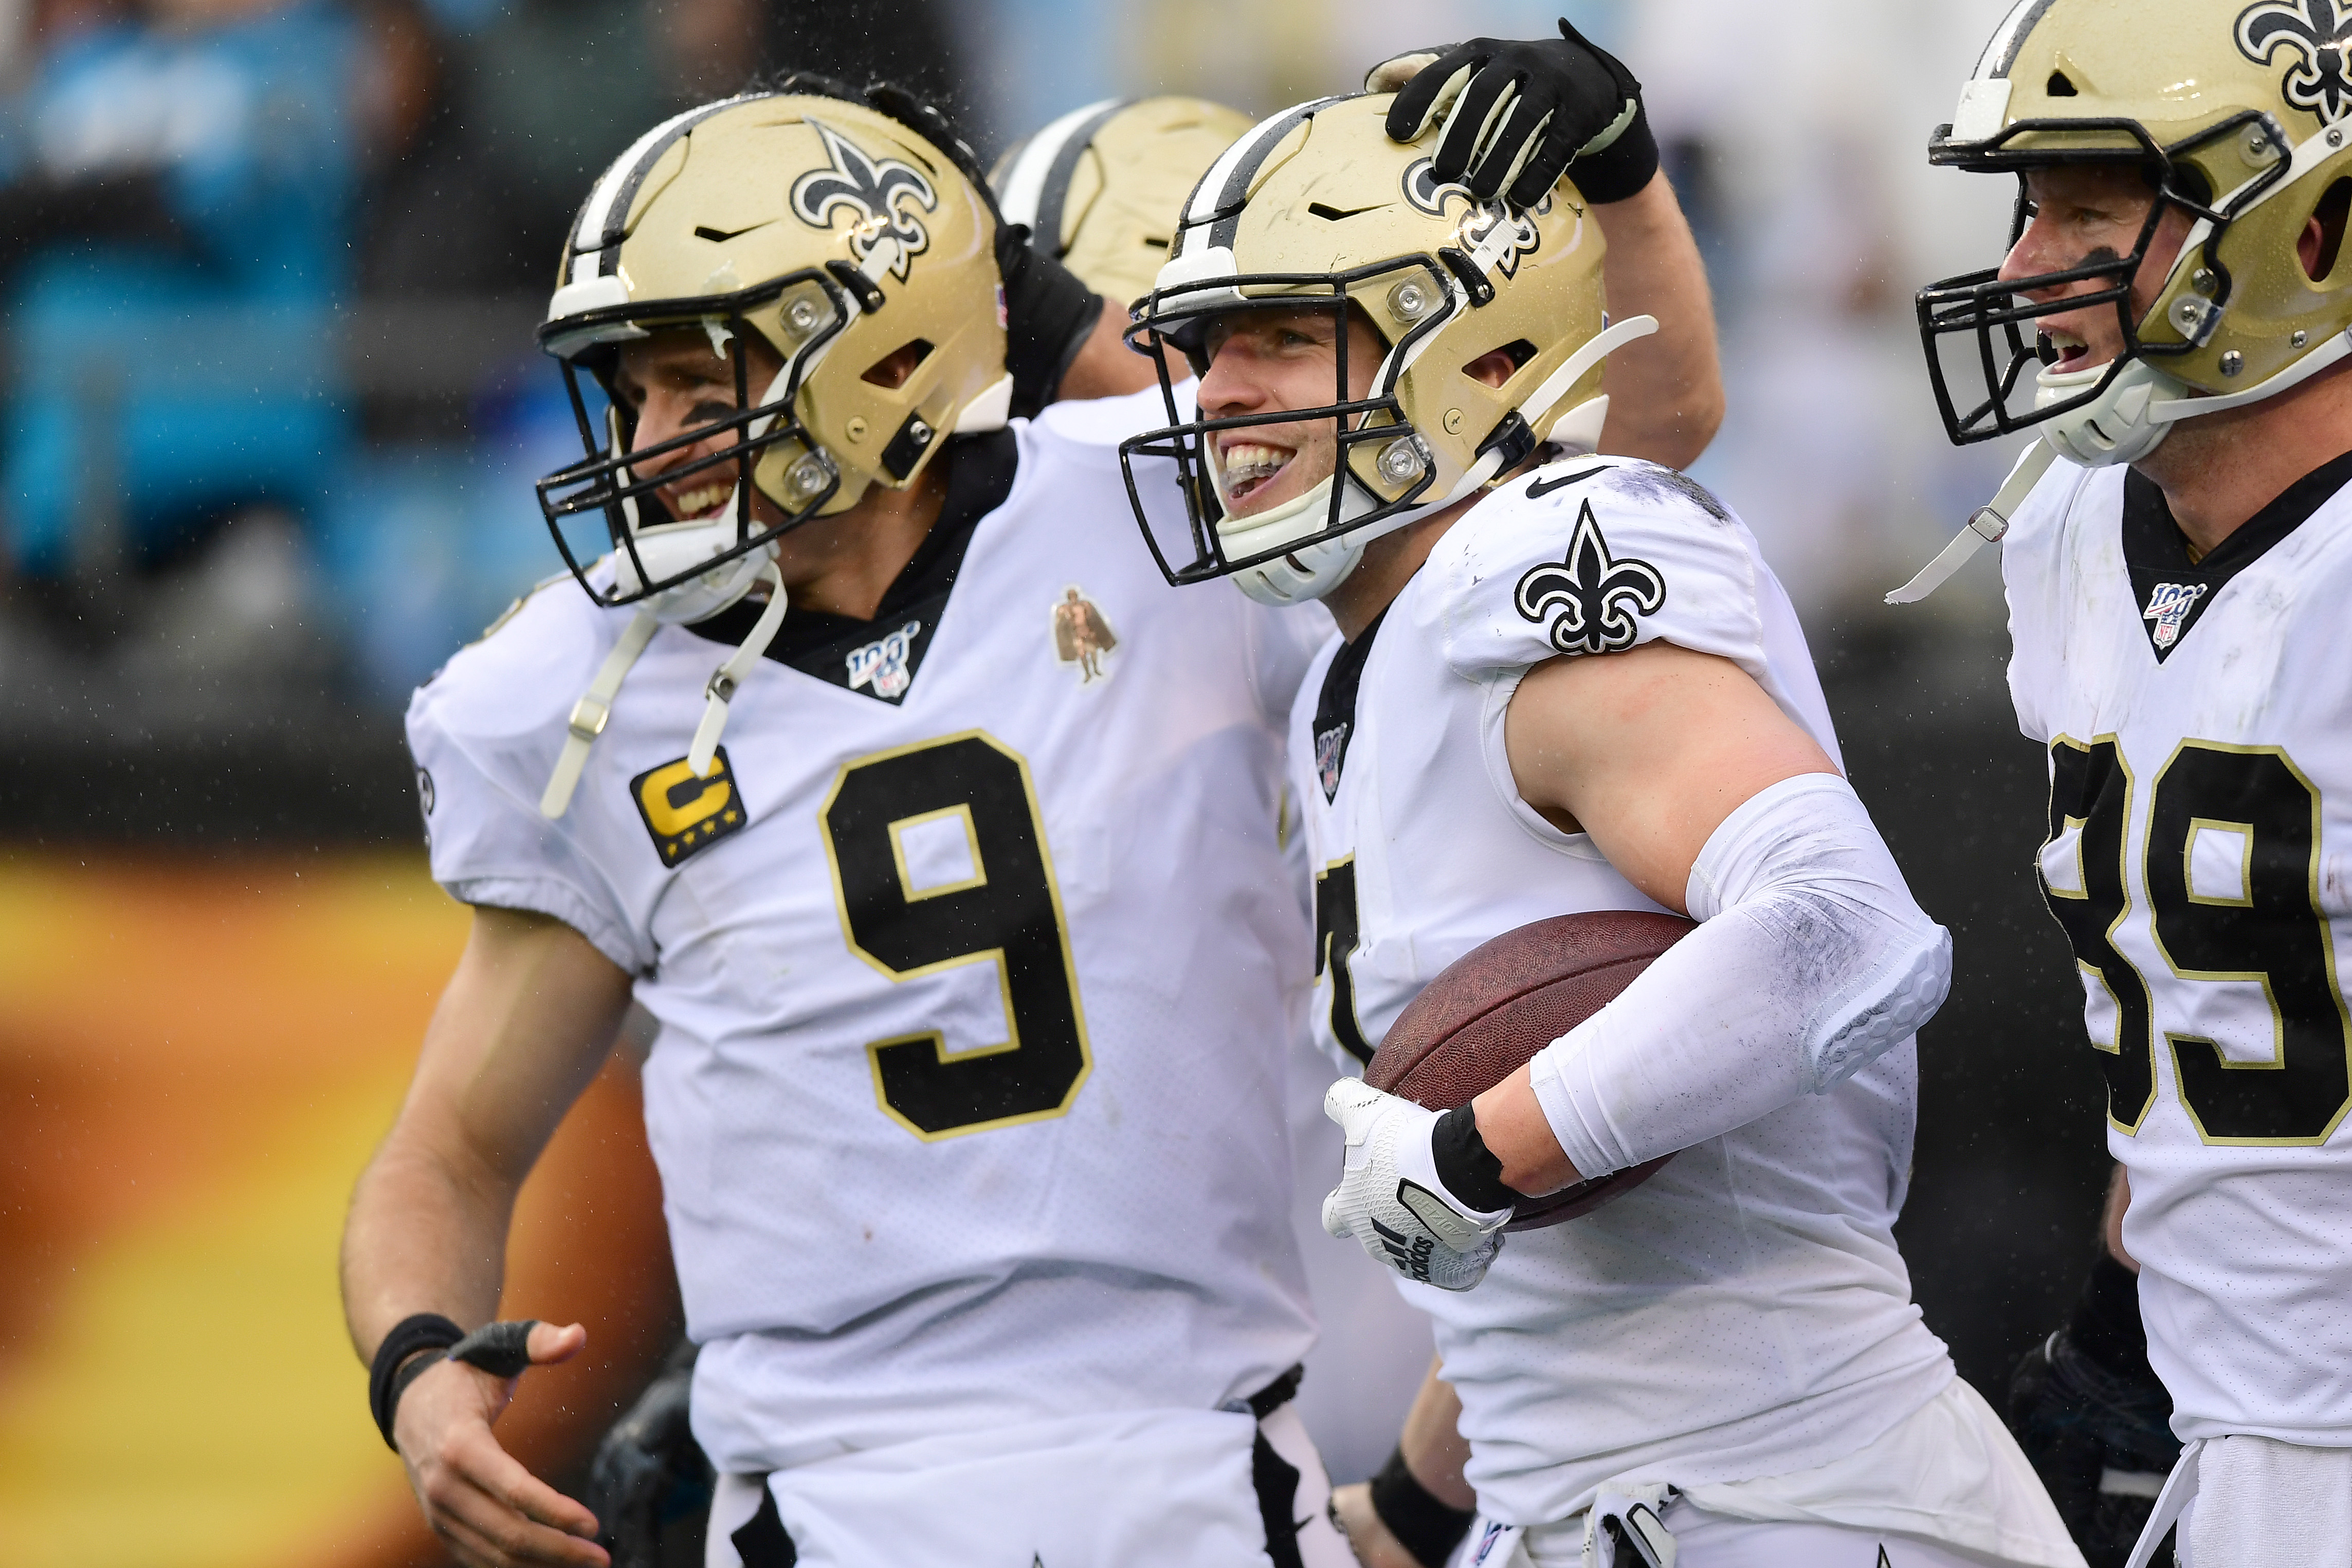 Drew Brees and Taysom Hill of the New Orleans Saints celebrate a touchdown pass